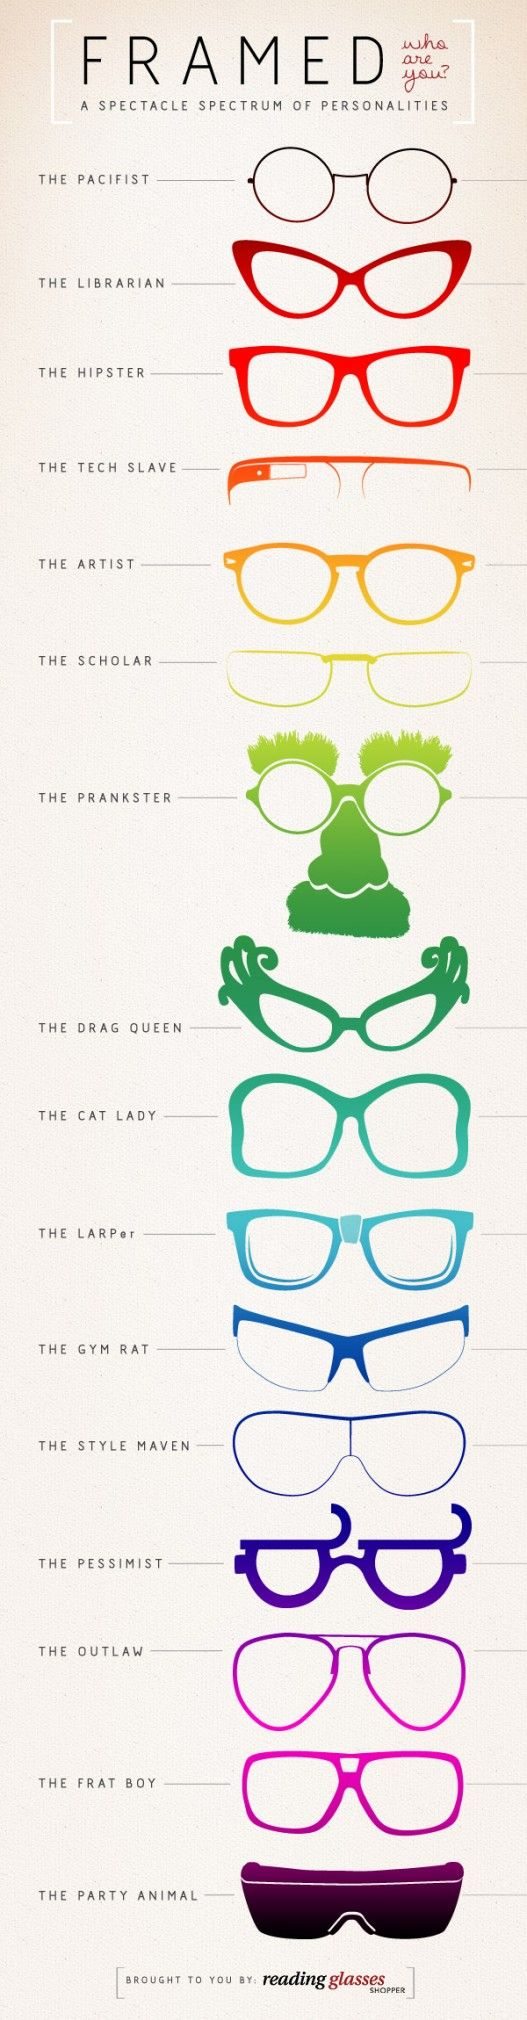 How Do You Say Eyeglass Frames In Spanish : Ever wonder what your glasses say about you? Find your ...